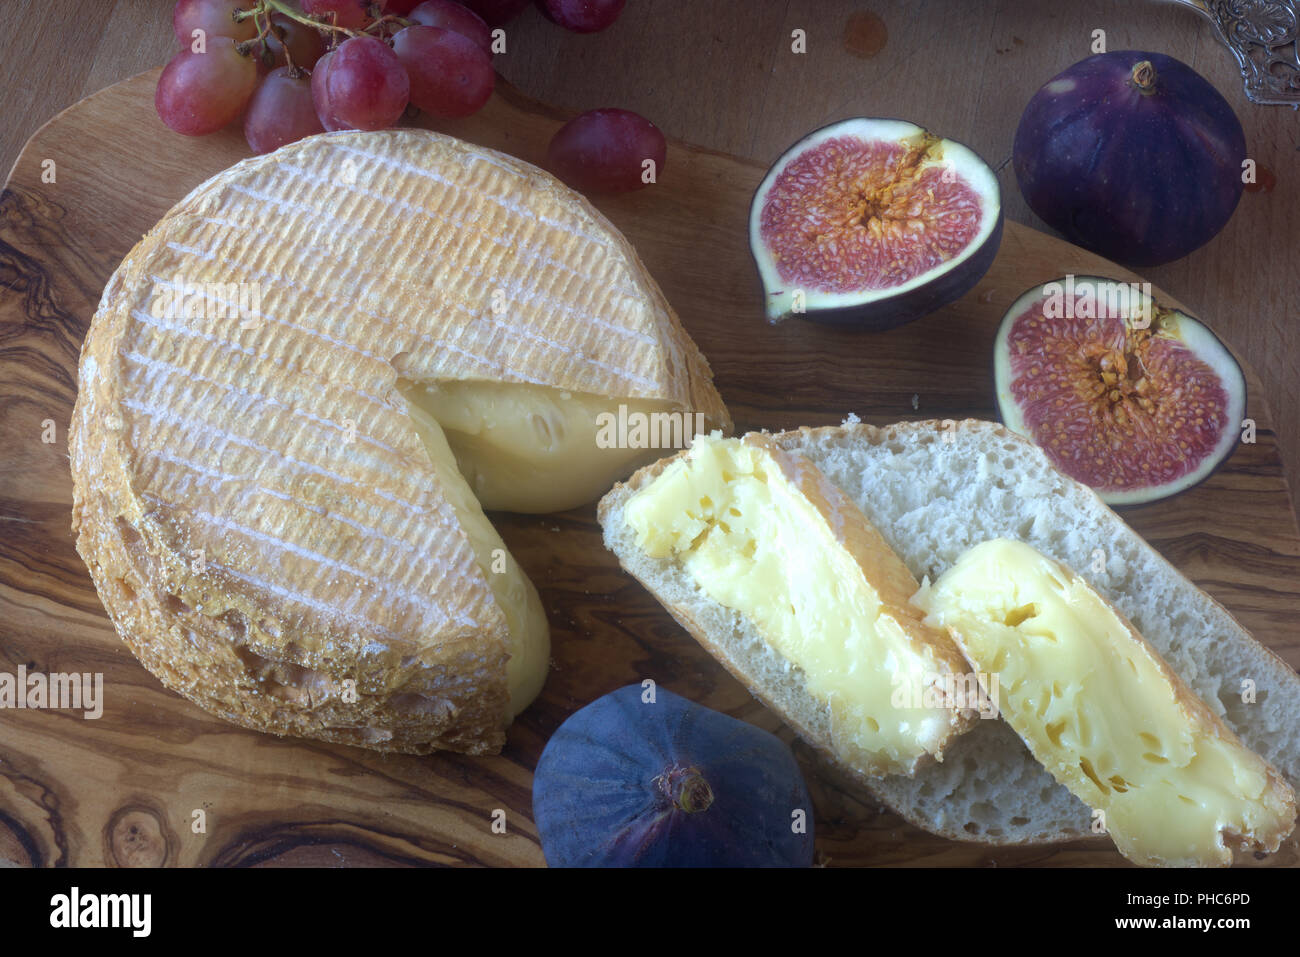 Livarot, French cheese from normandy; fromage français de Normandie - Stock Image